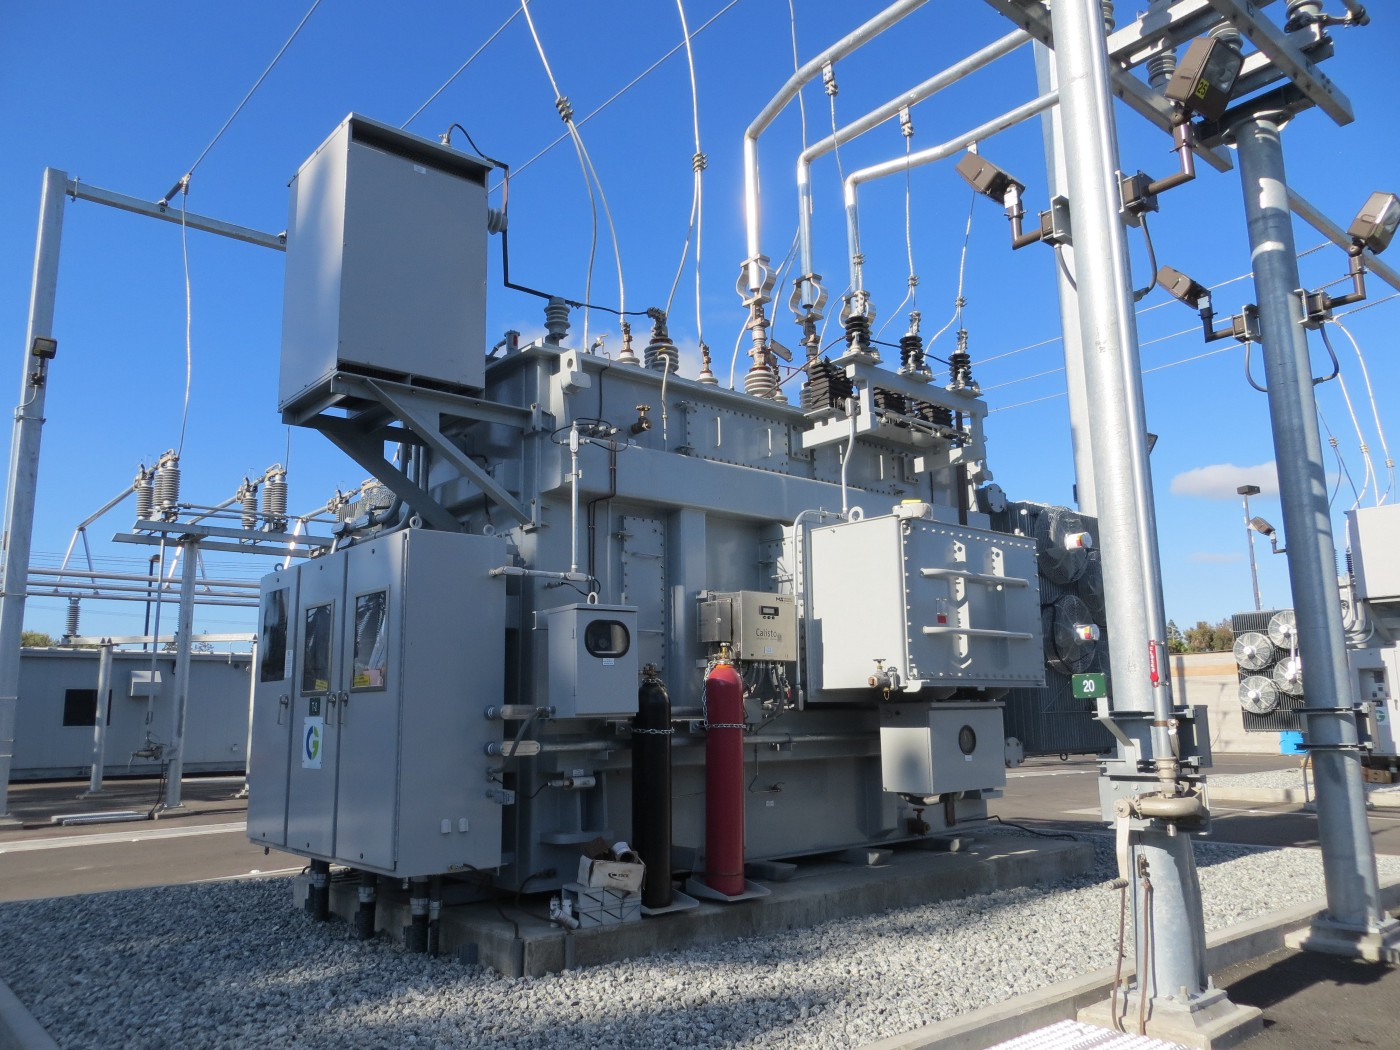 An image of an electrical substation.